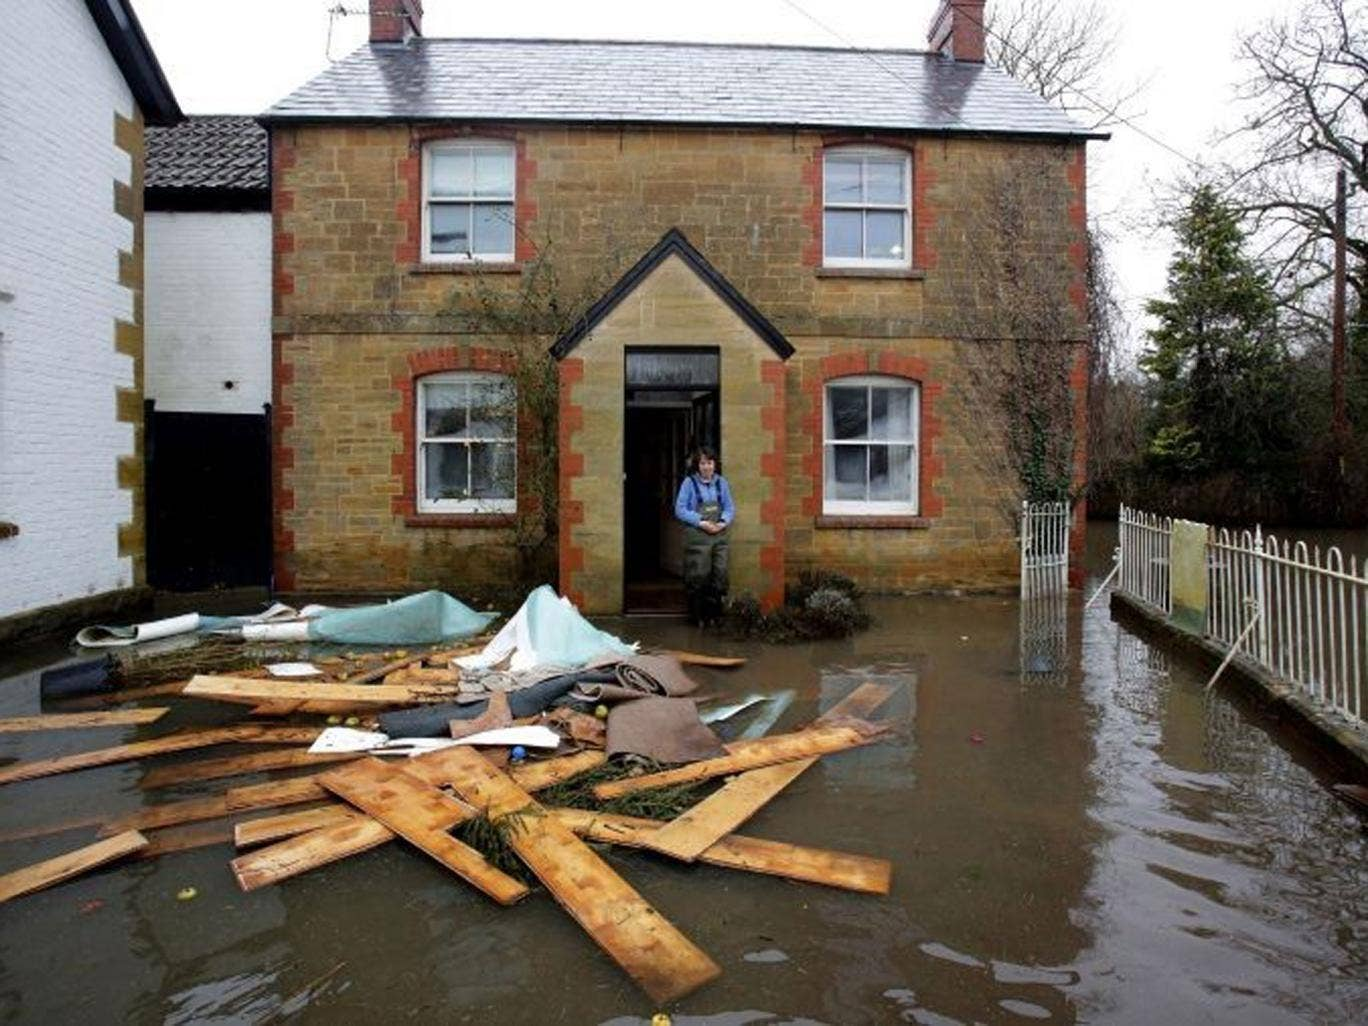 Water torture: If valuable possessions are damaged or washed away in a flood, will your insurer honour your claim in the way you want?